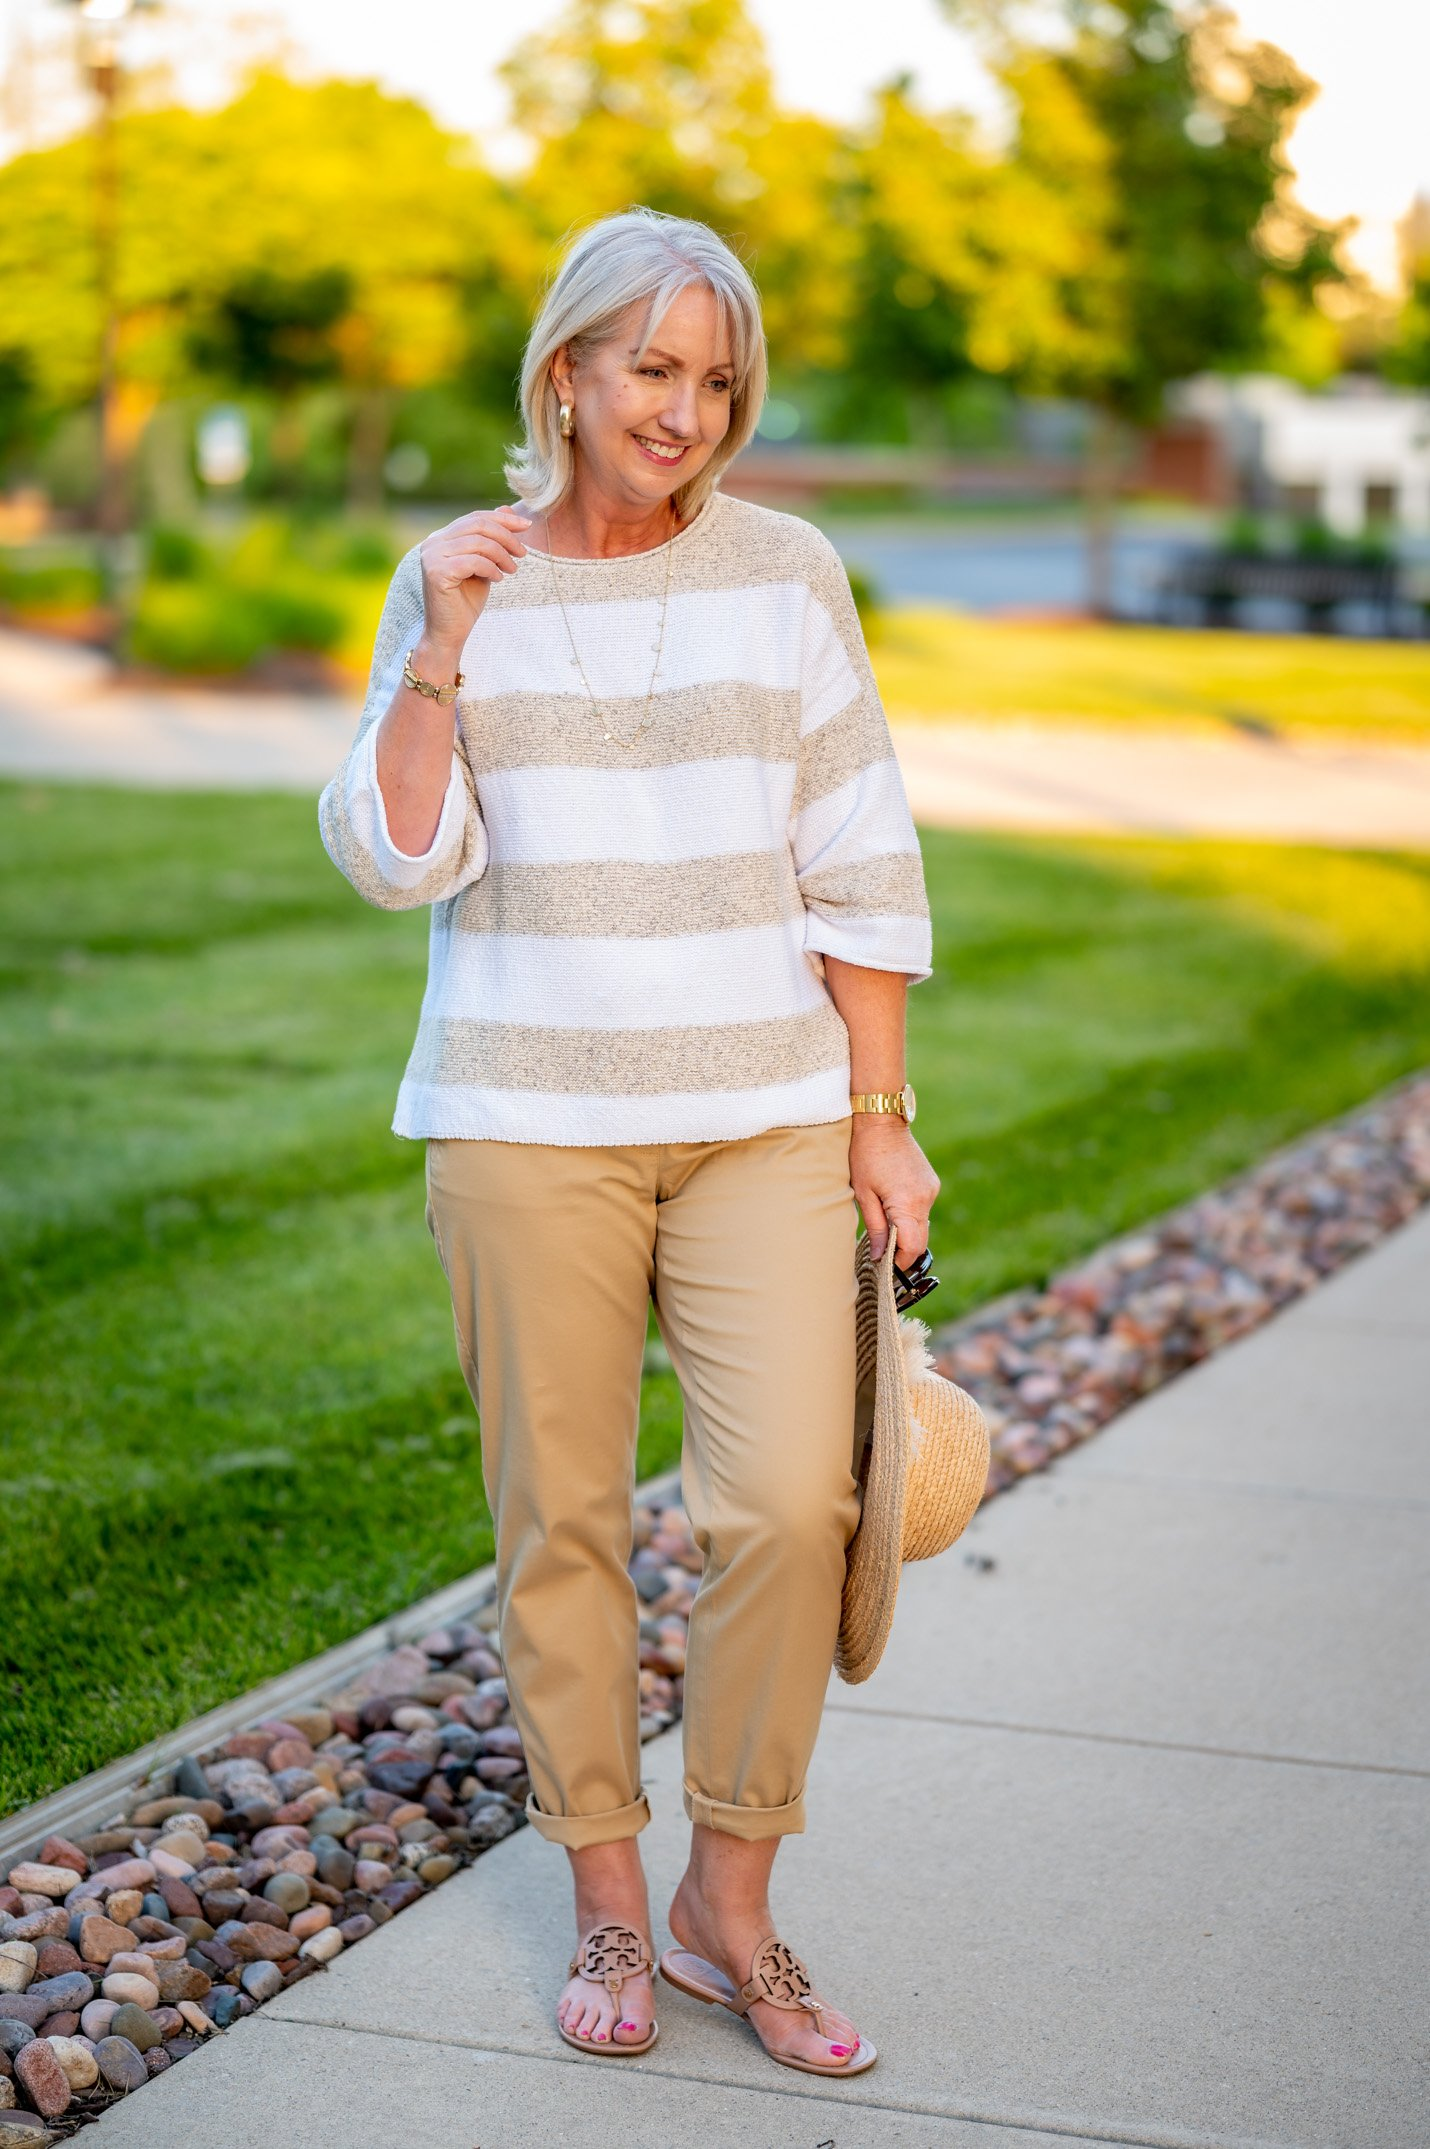 Casual Summer Outfit in Soft Neutrals